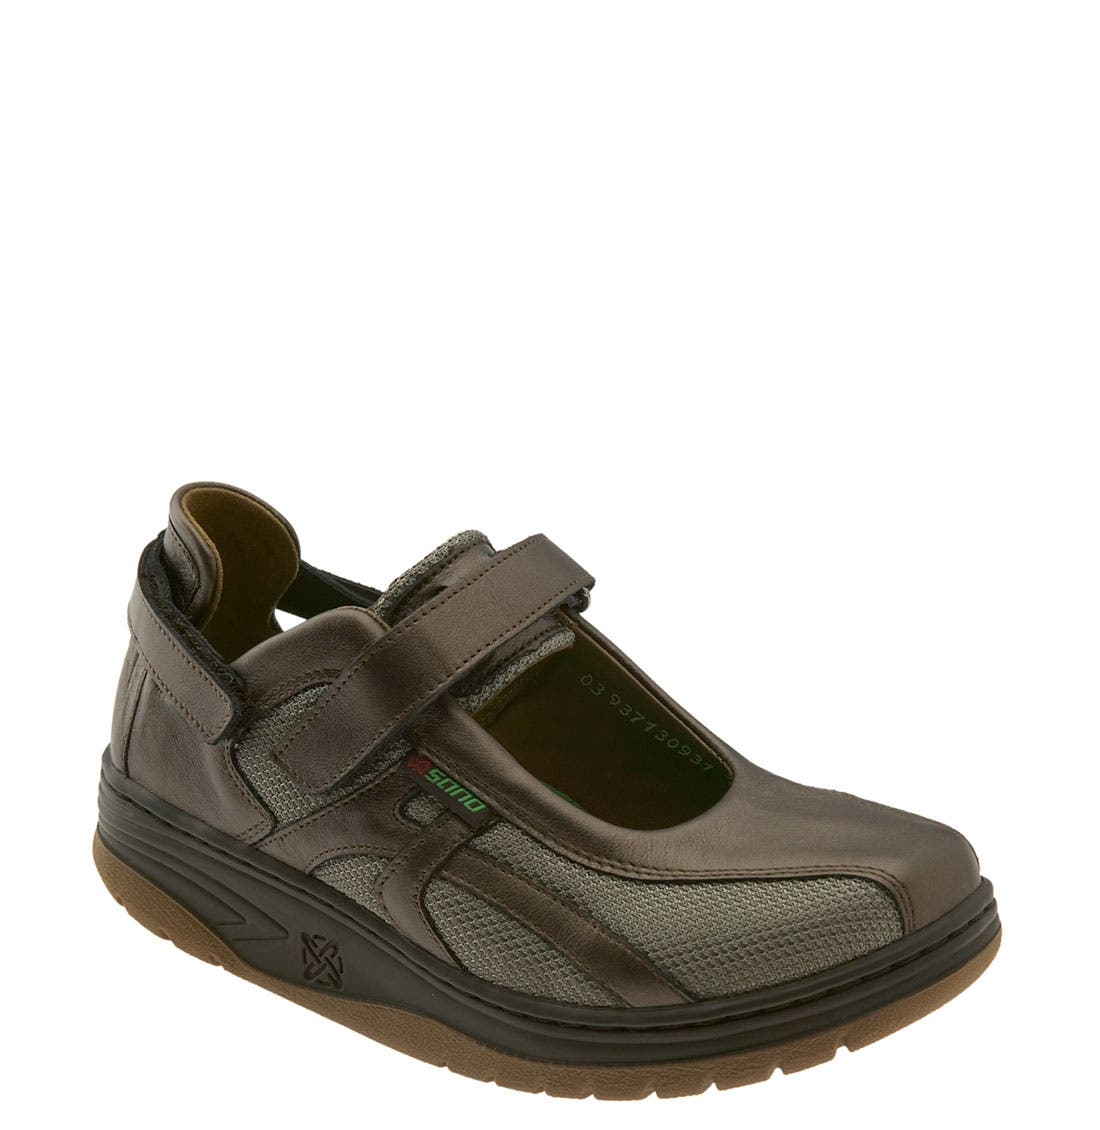 Sano by Mephisto 'Excess' Walking Shoe,                             Main thumbnail 2, color,